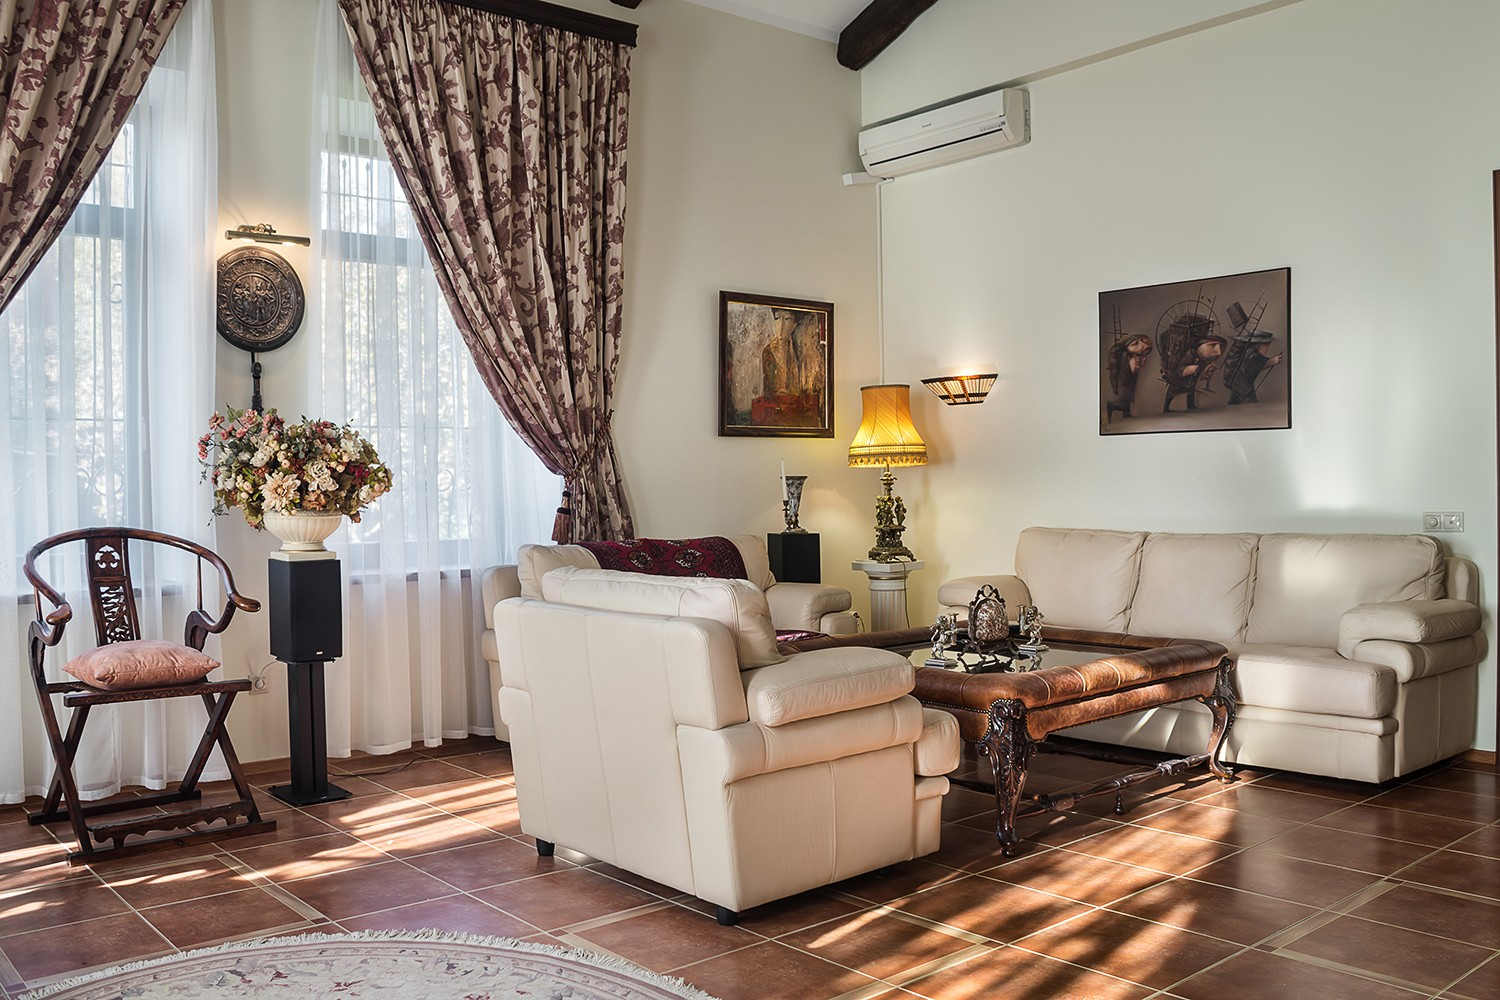 Interior of a living room in a country house. professional real estate photography for sale